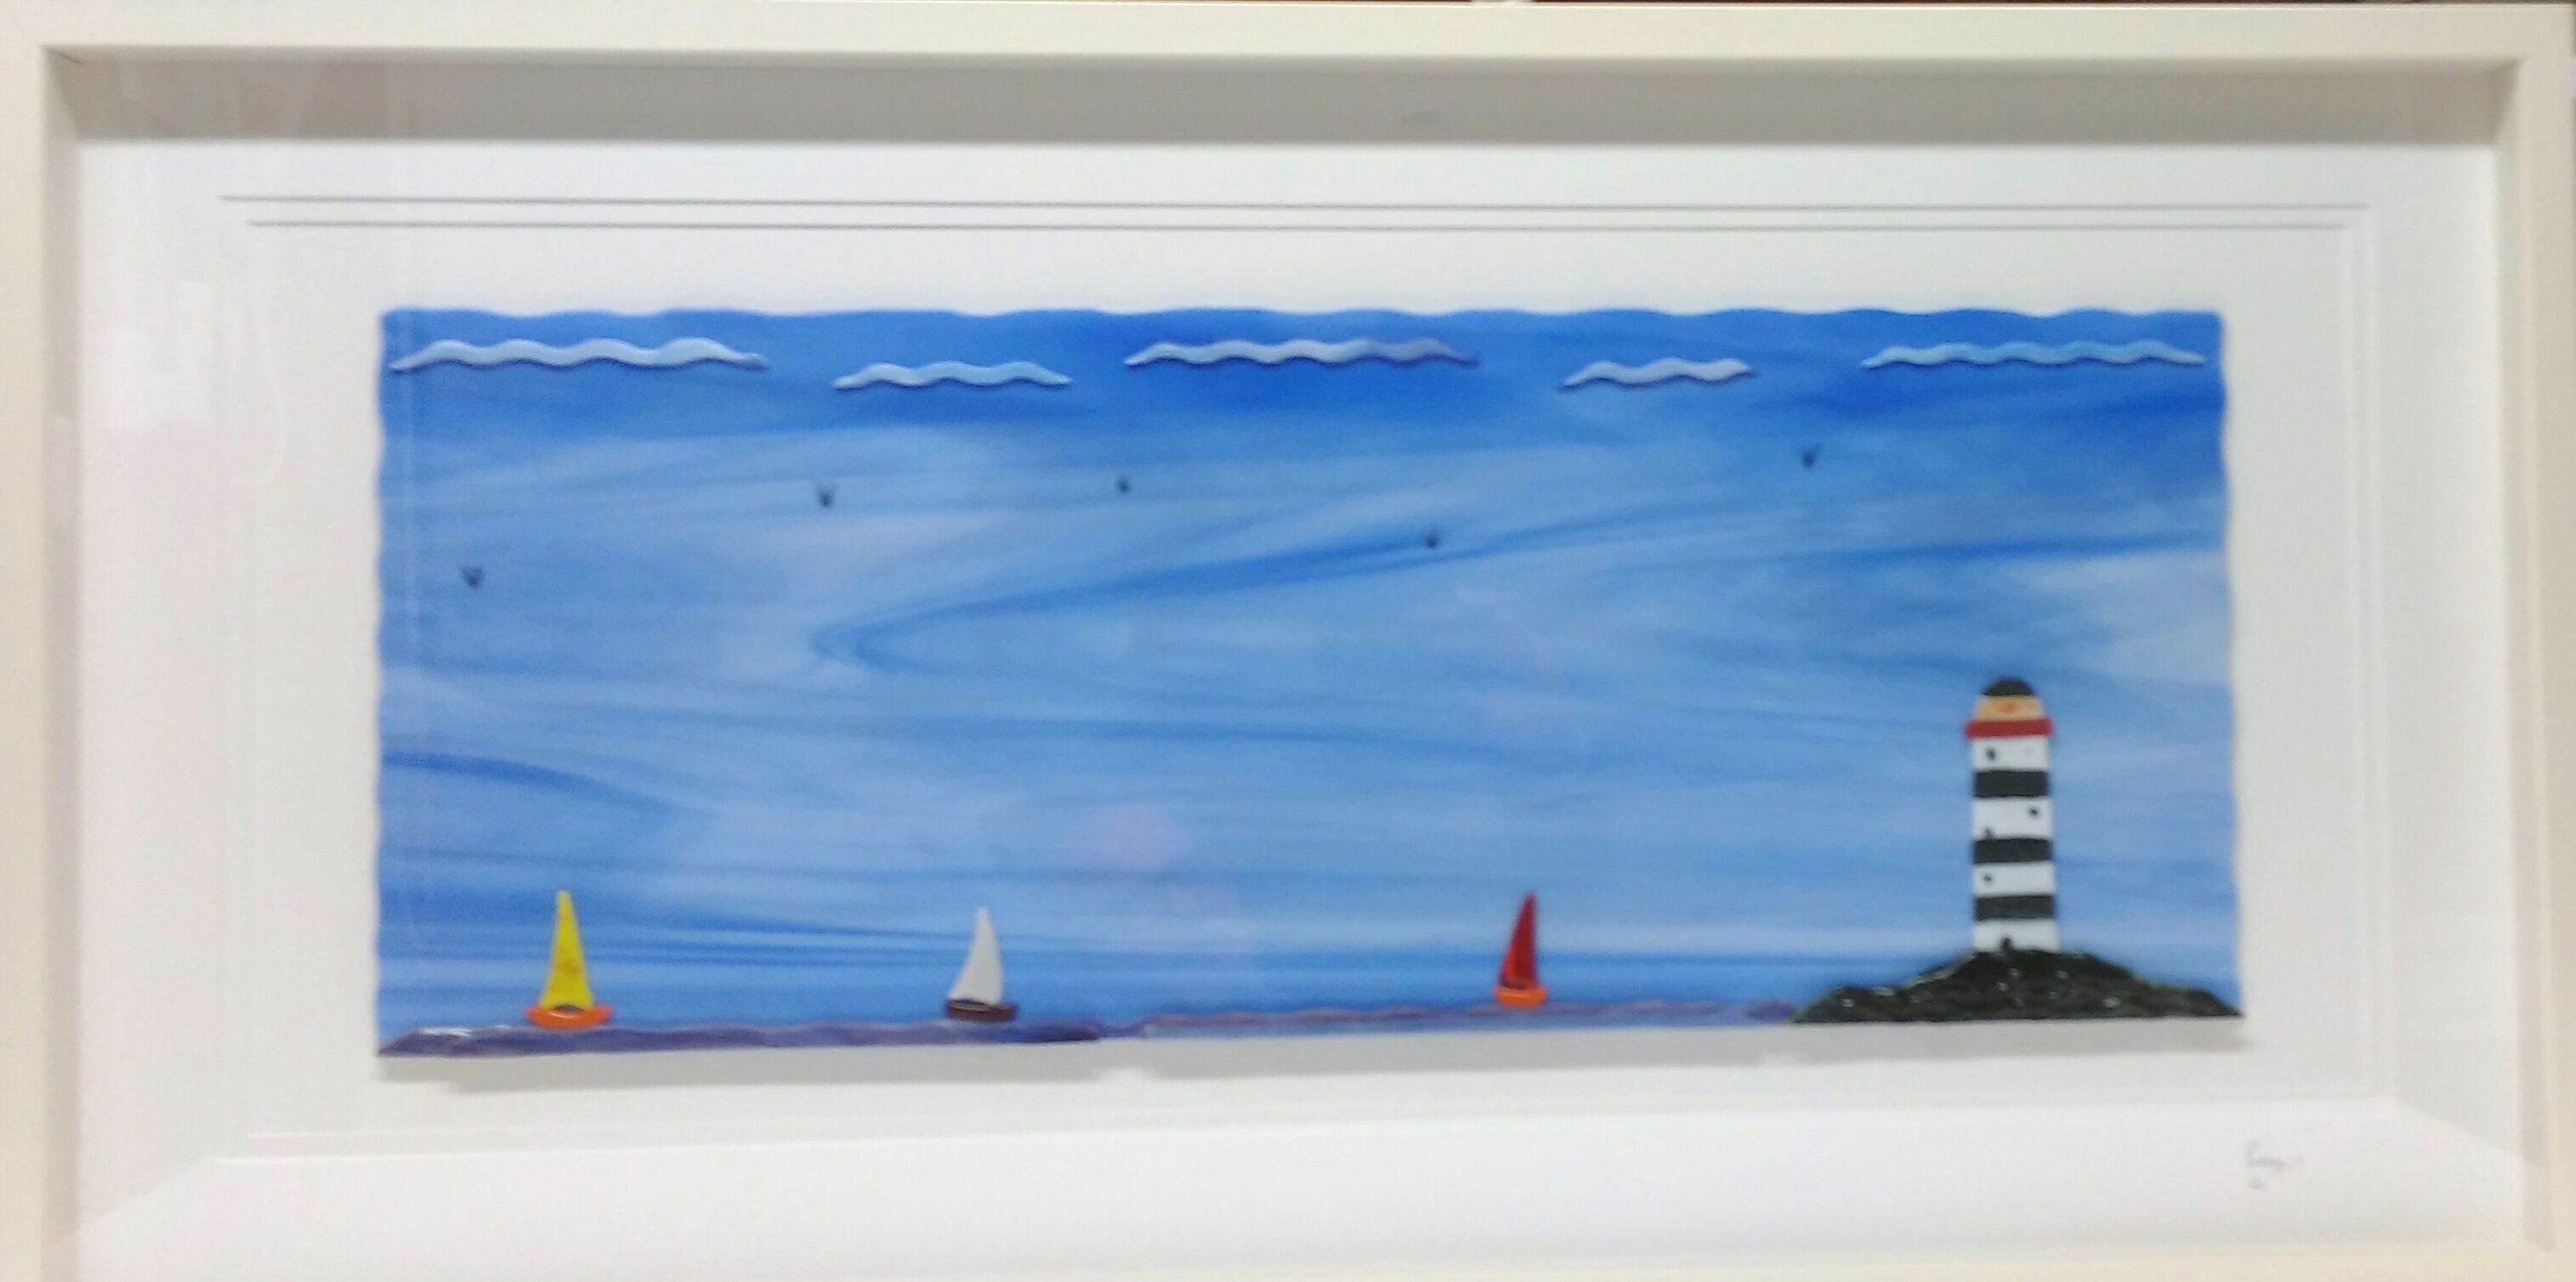 Sky blue Glass Art with black & white  LightHouse perched on rocks.  3 Sailing Boats red,yellow white sails